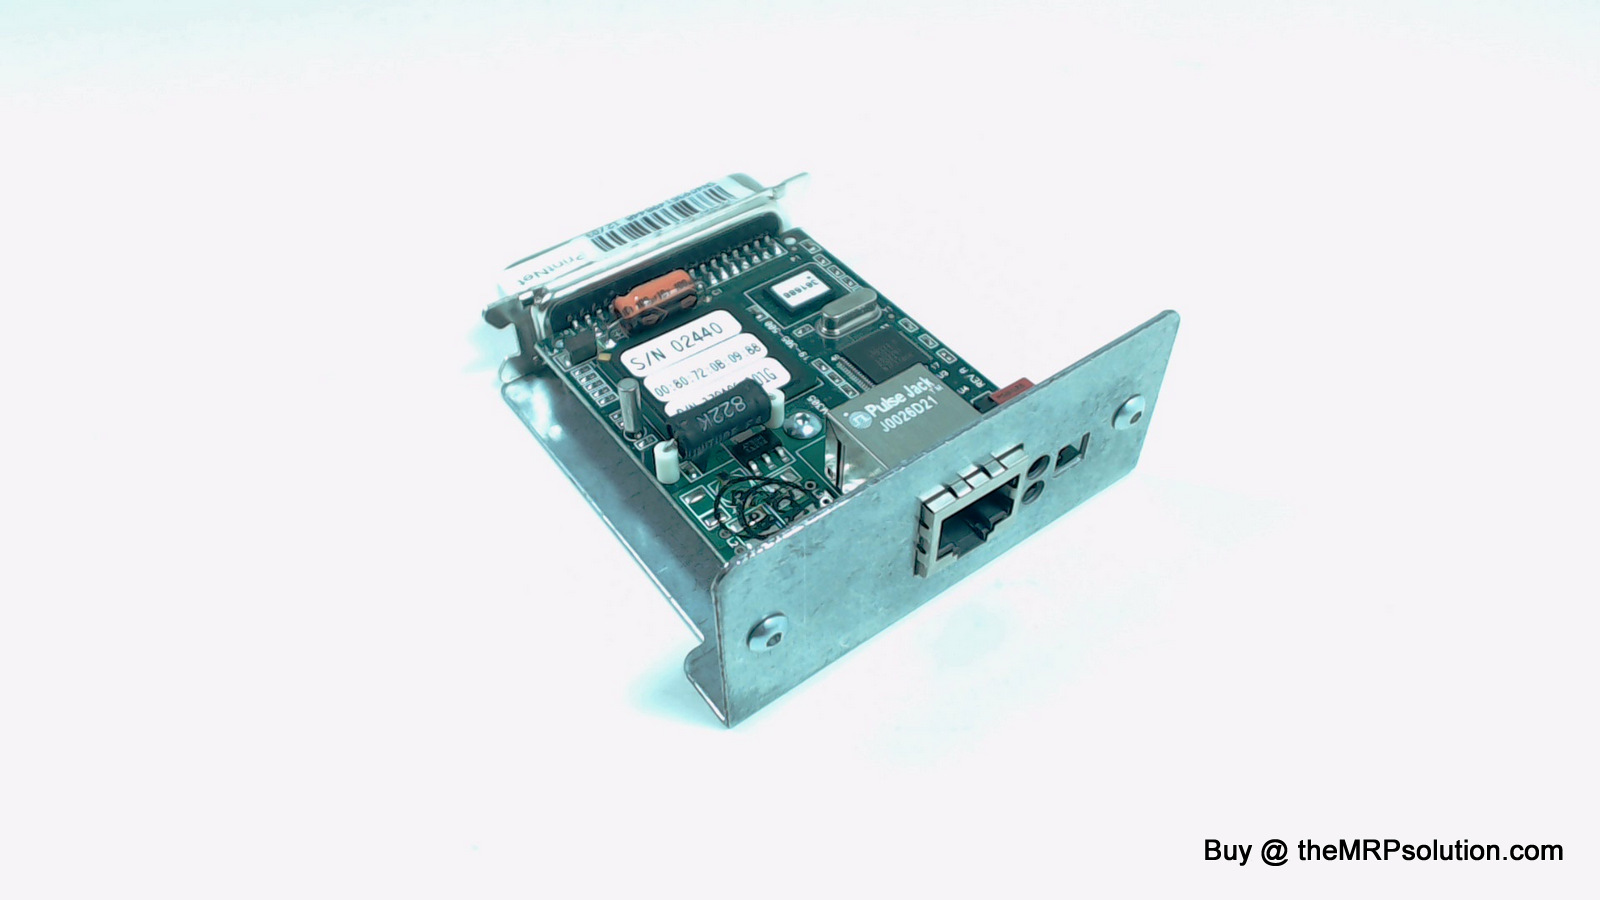 IBM 01P8301 ETHERNET PRINT SERVER 10/100 BASE T Refurbished